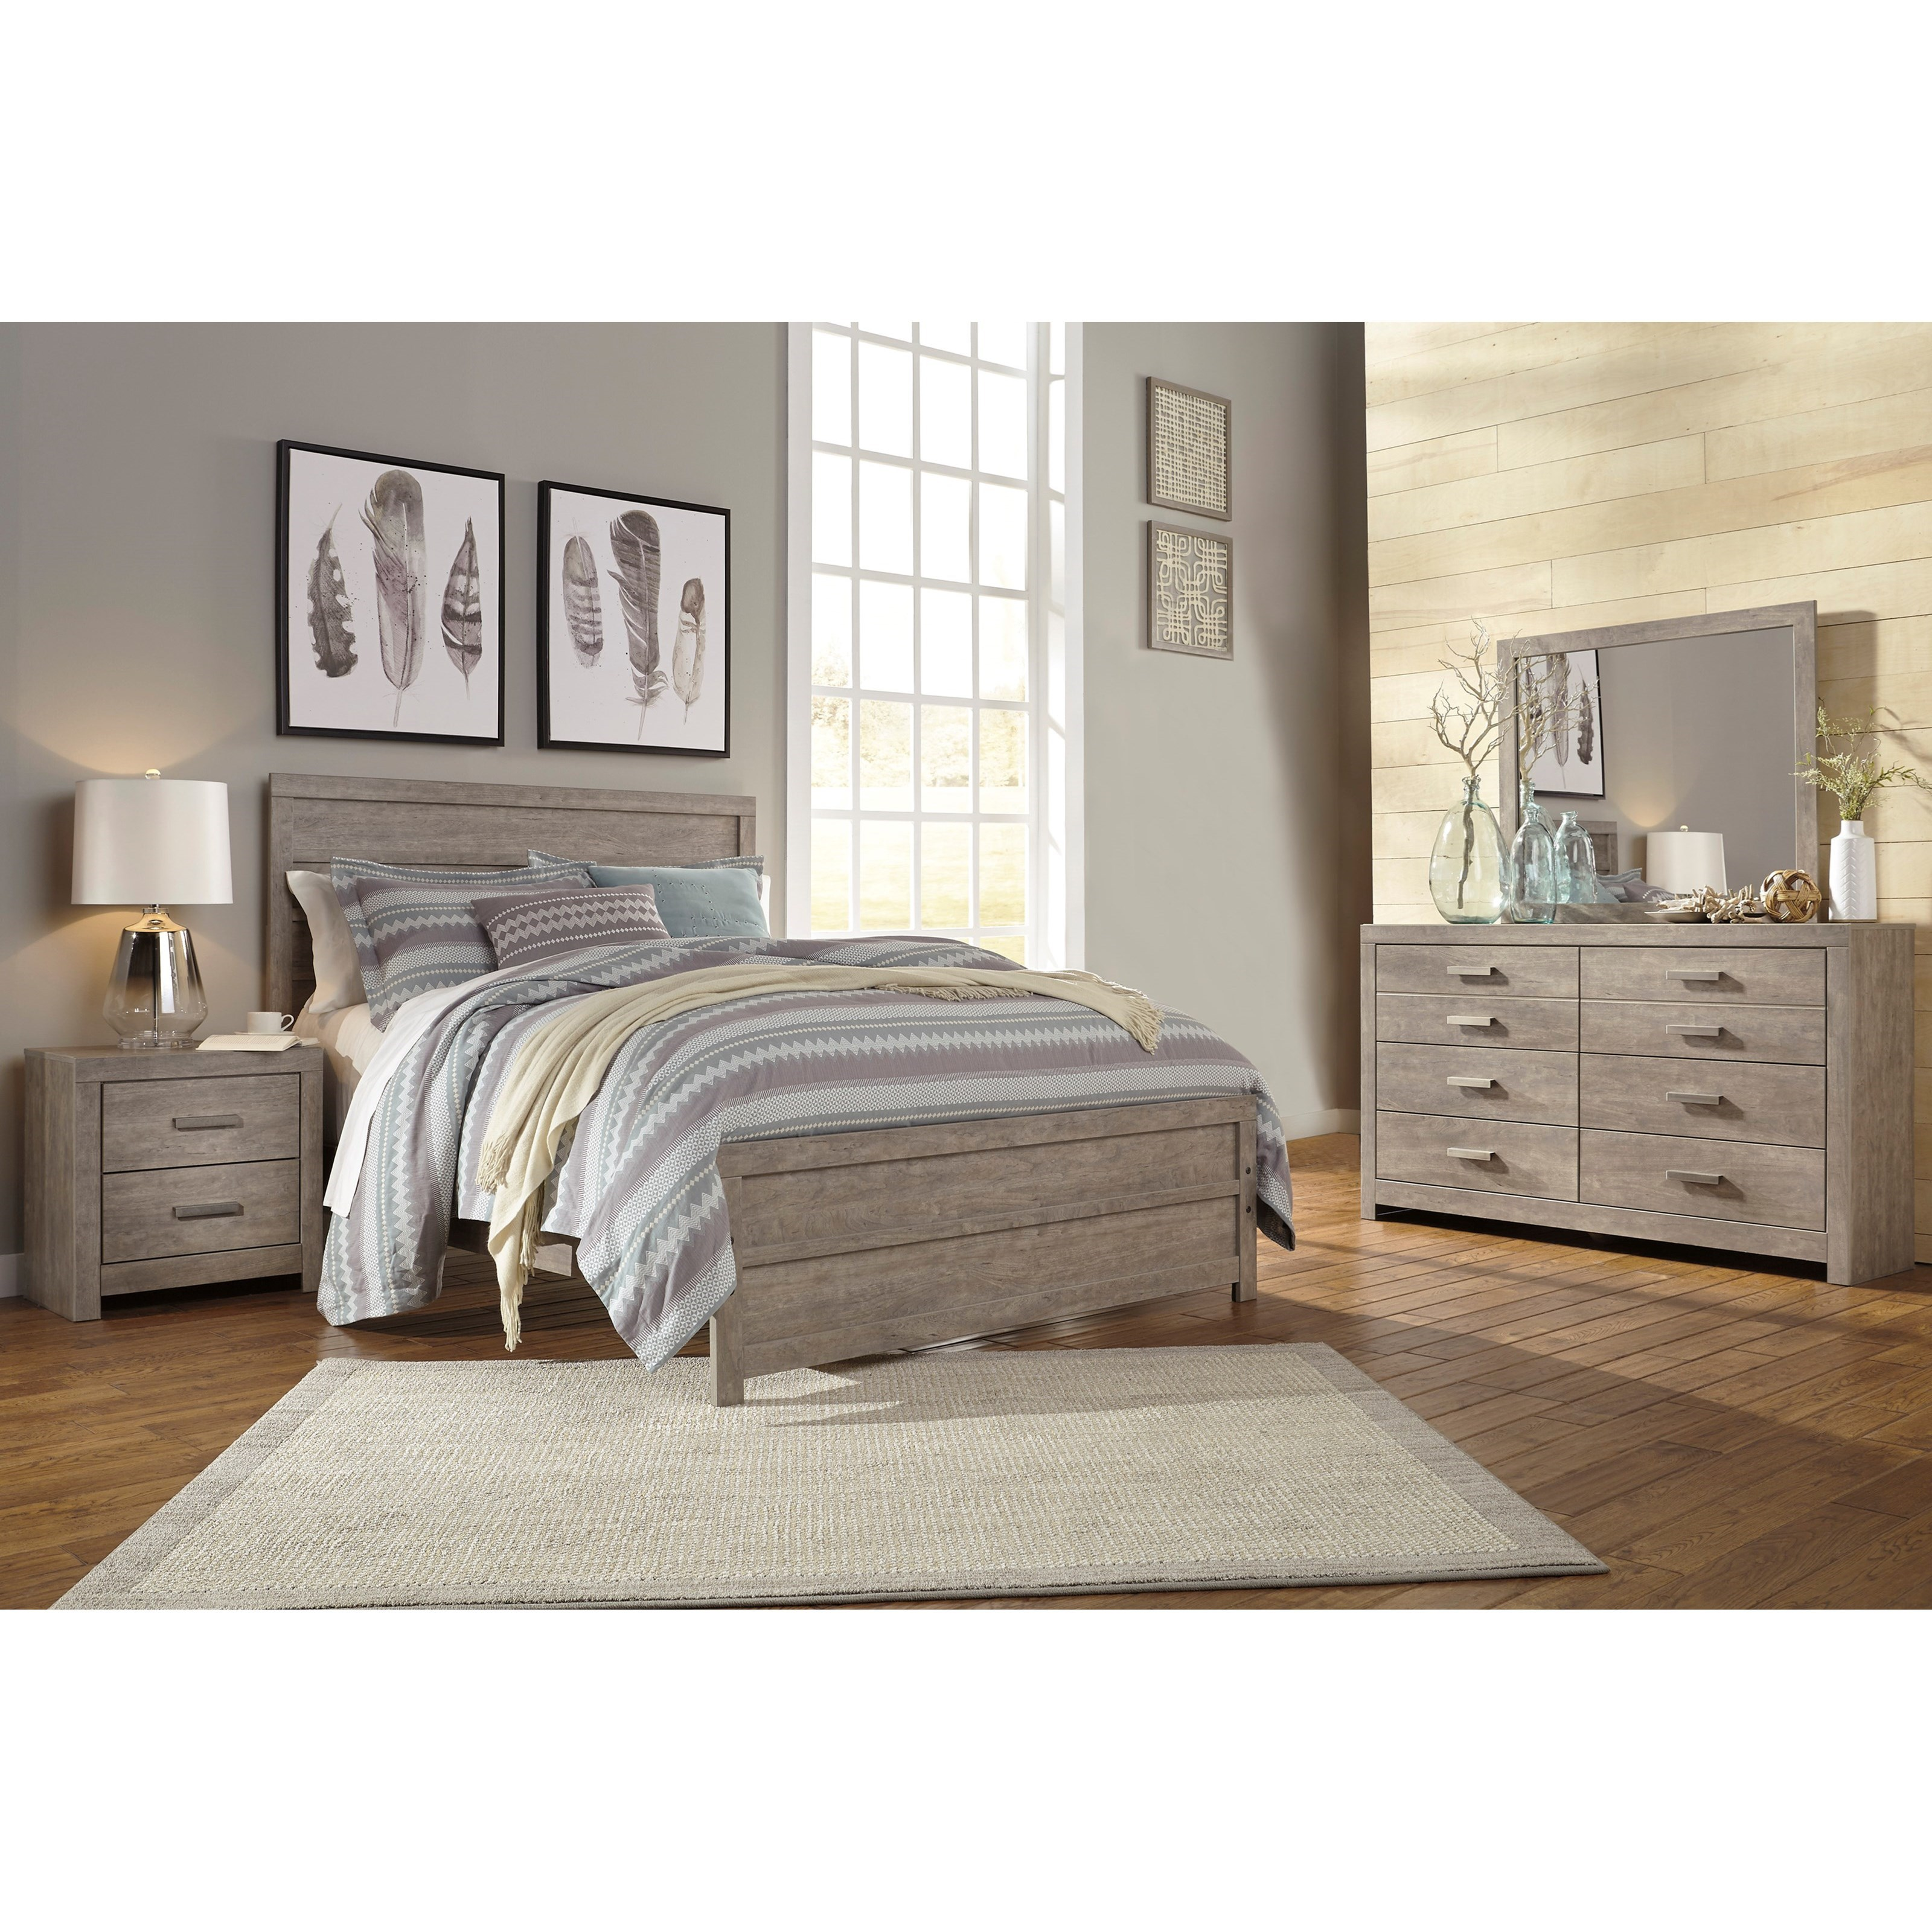 Culverbach Queen Bedroom Group by Signature Design by Ashley at Northeast Factory Direct